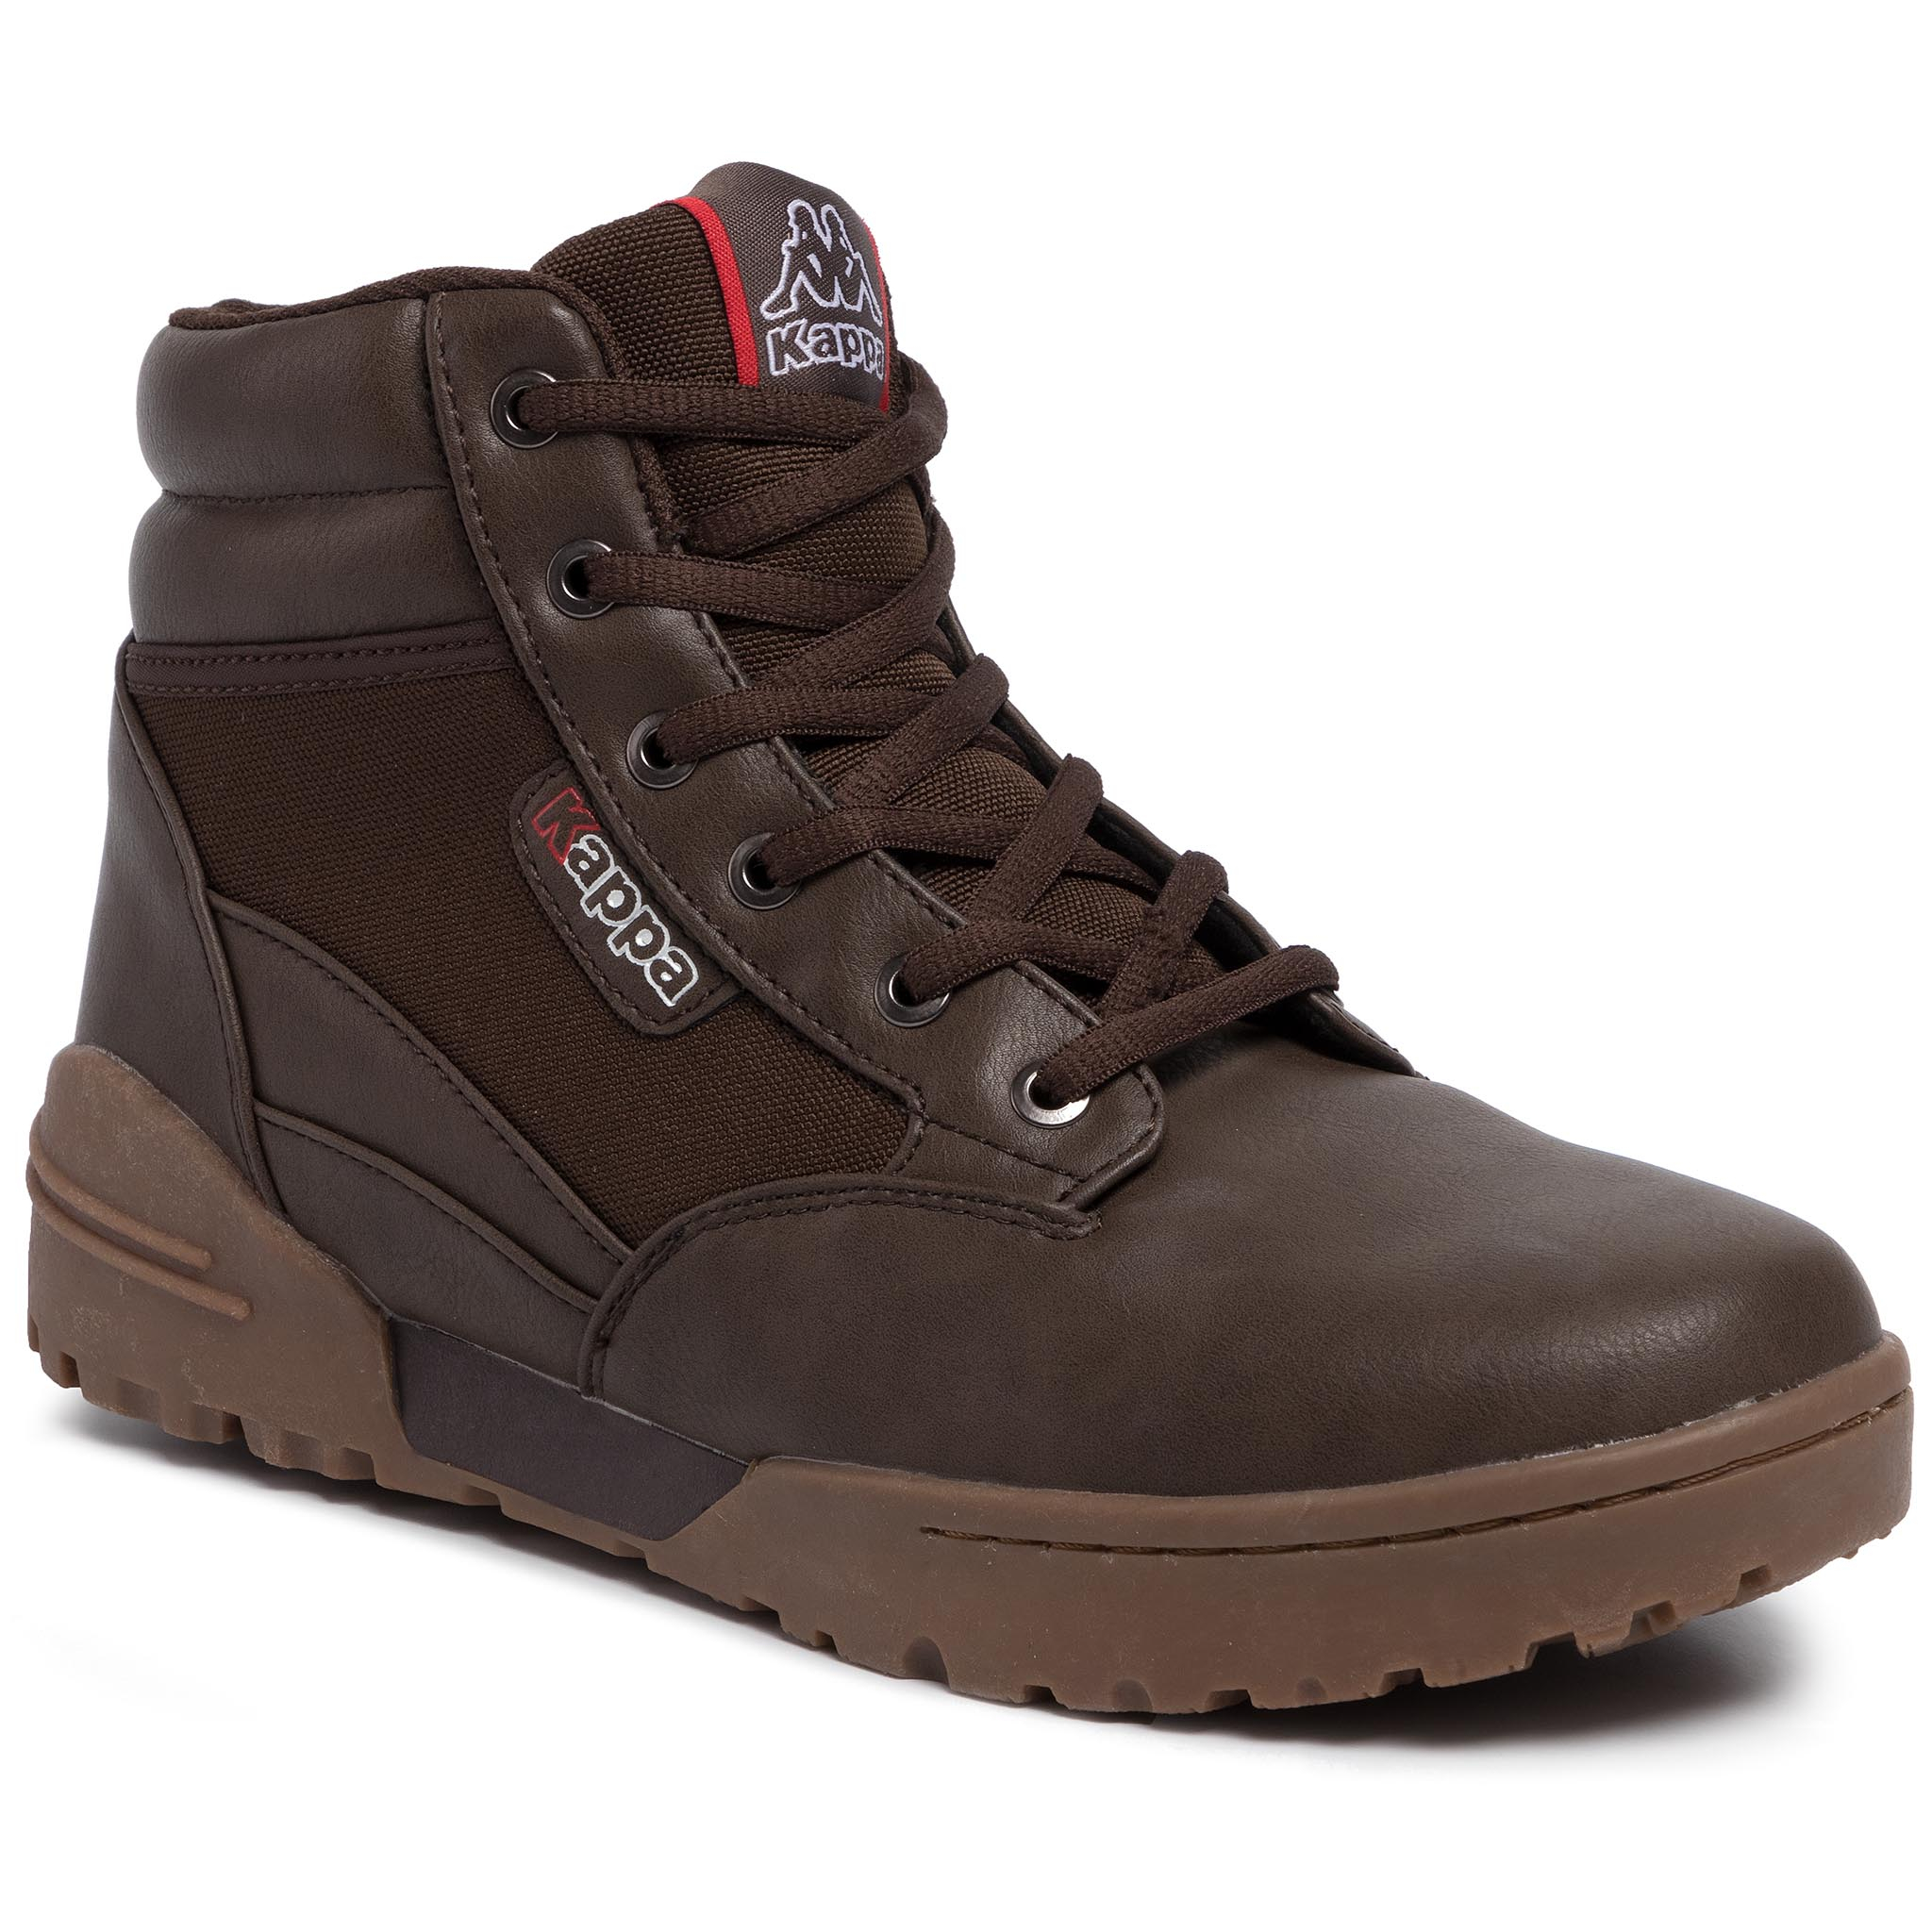 Trekkings KAPPA - Bonfire 242777 Brown 5050